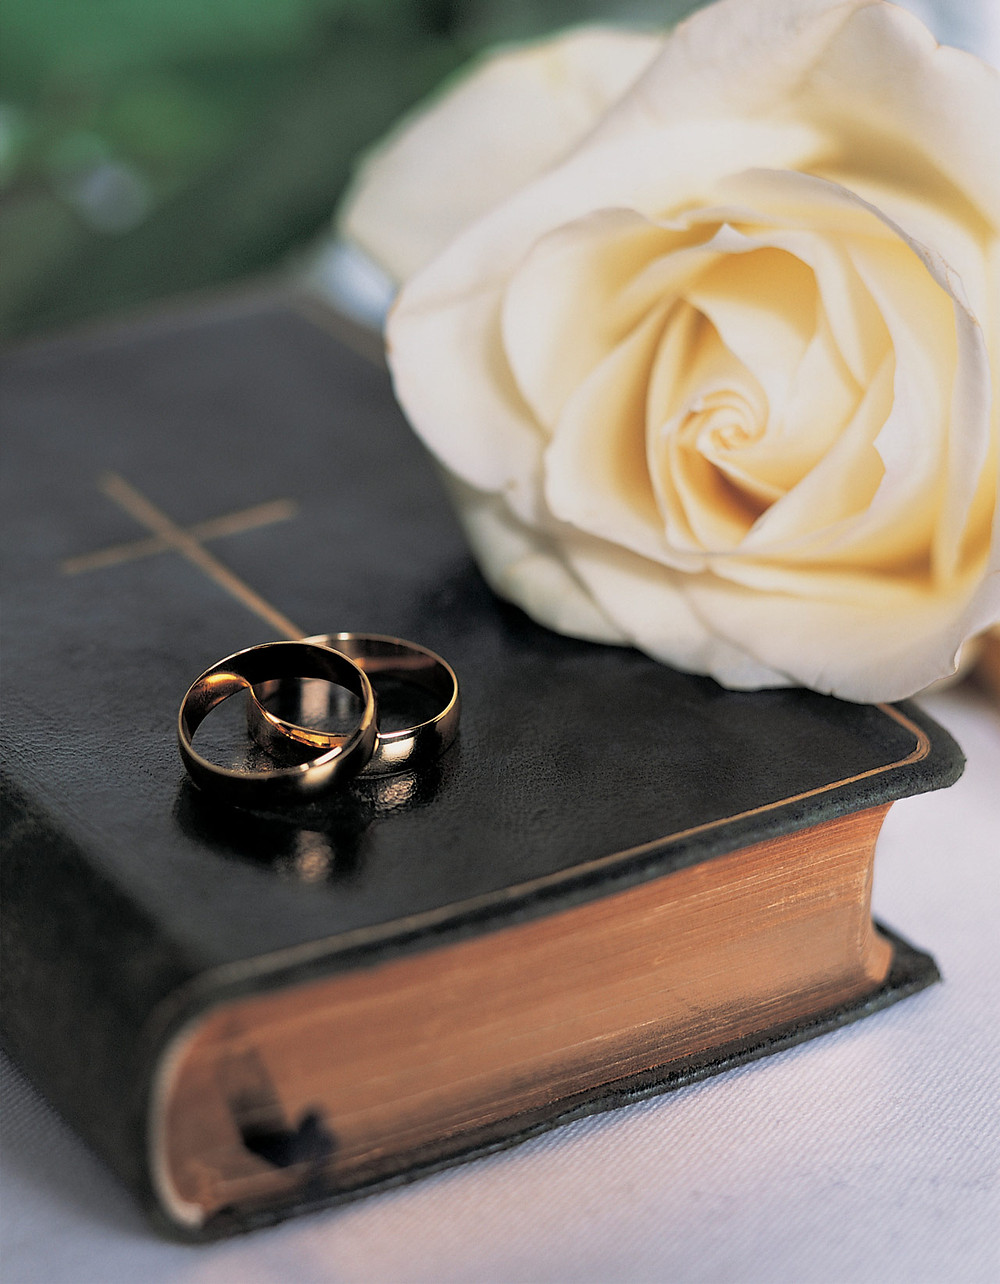 wedding bands on a bible and a white rose